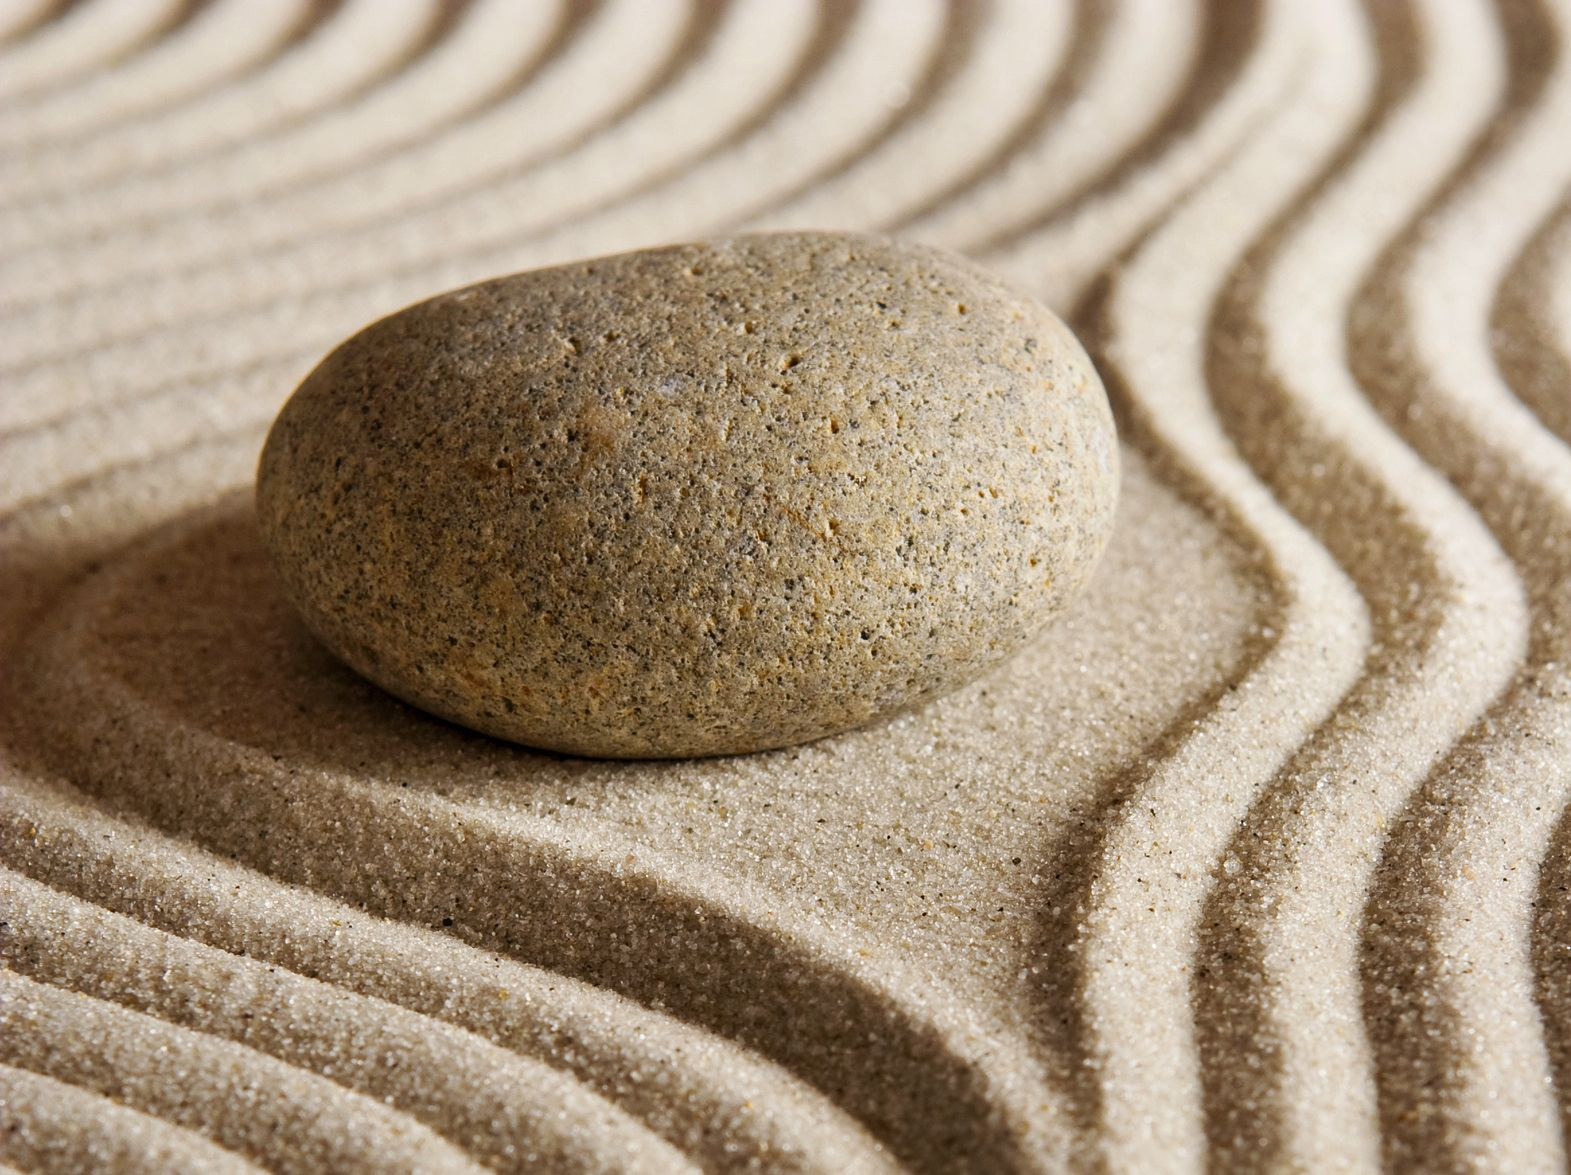 Zen rock garden wallpaper - Japanese Rock Garden Wallpaper Home Ideas For Zen Rock Garden Wallpaper